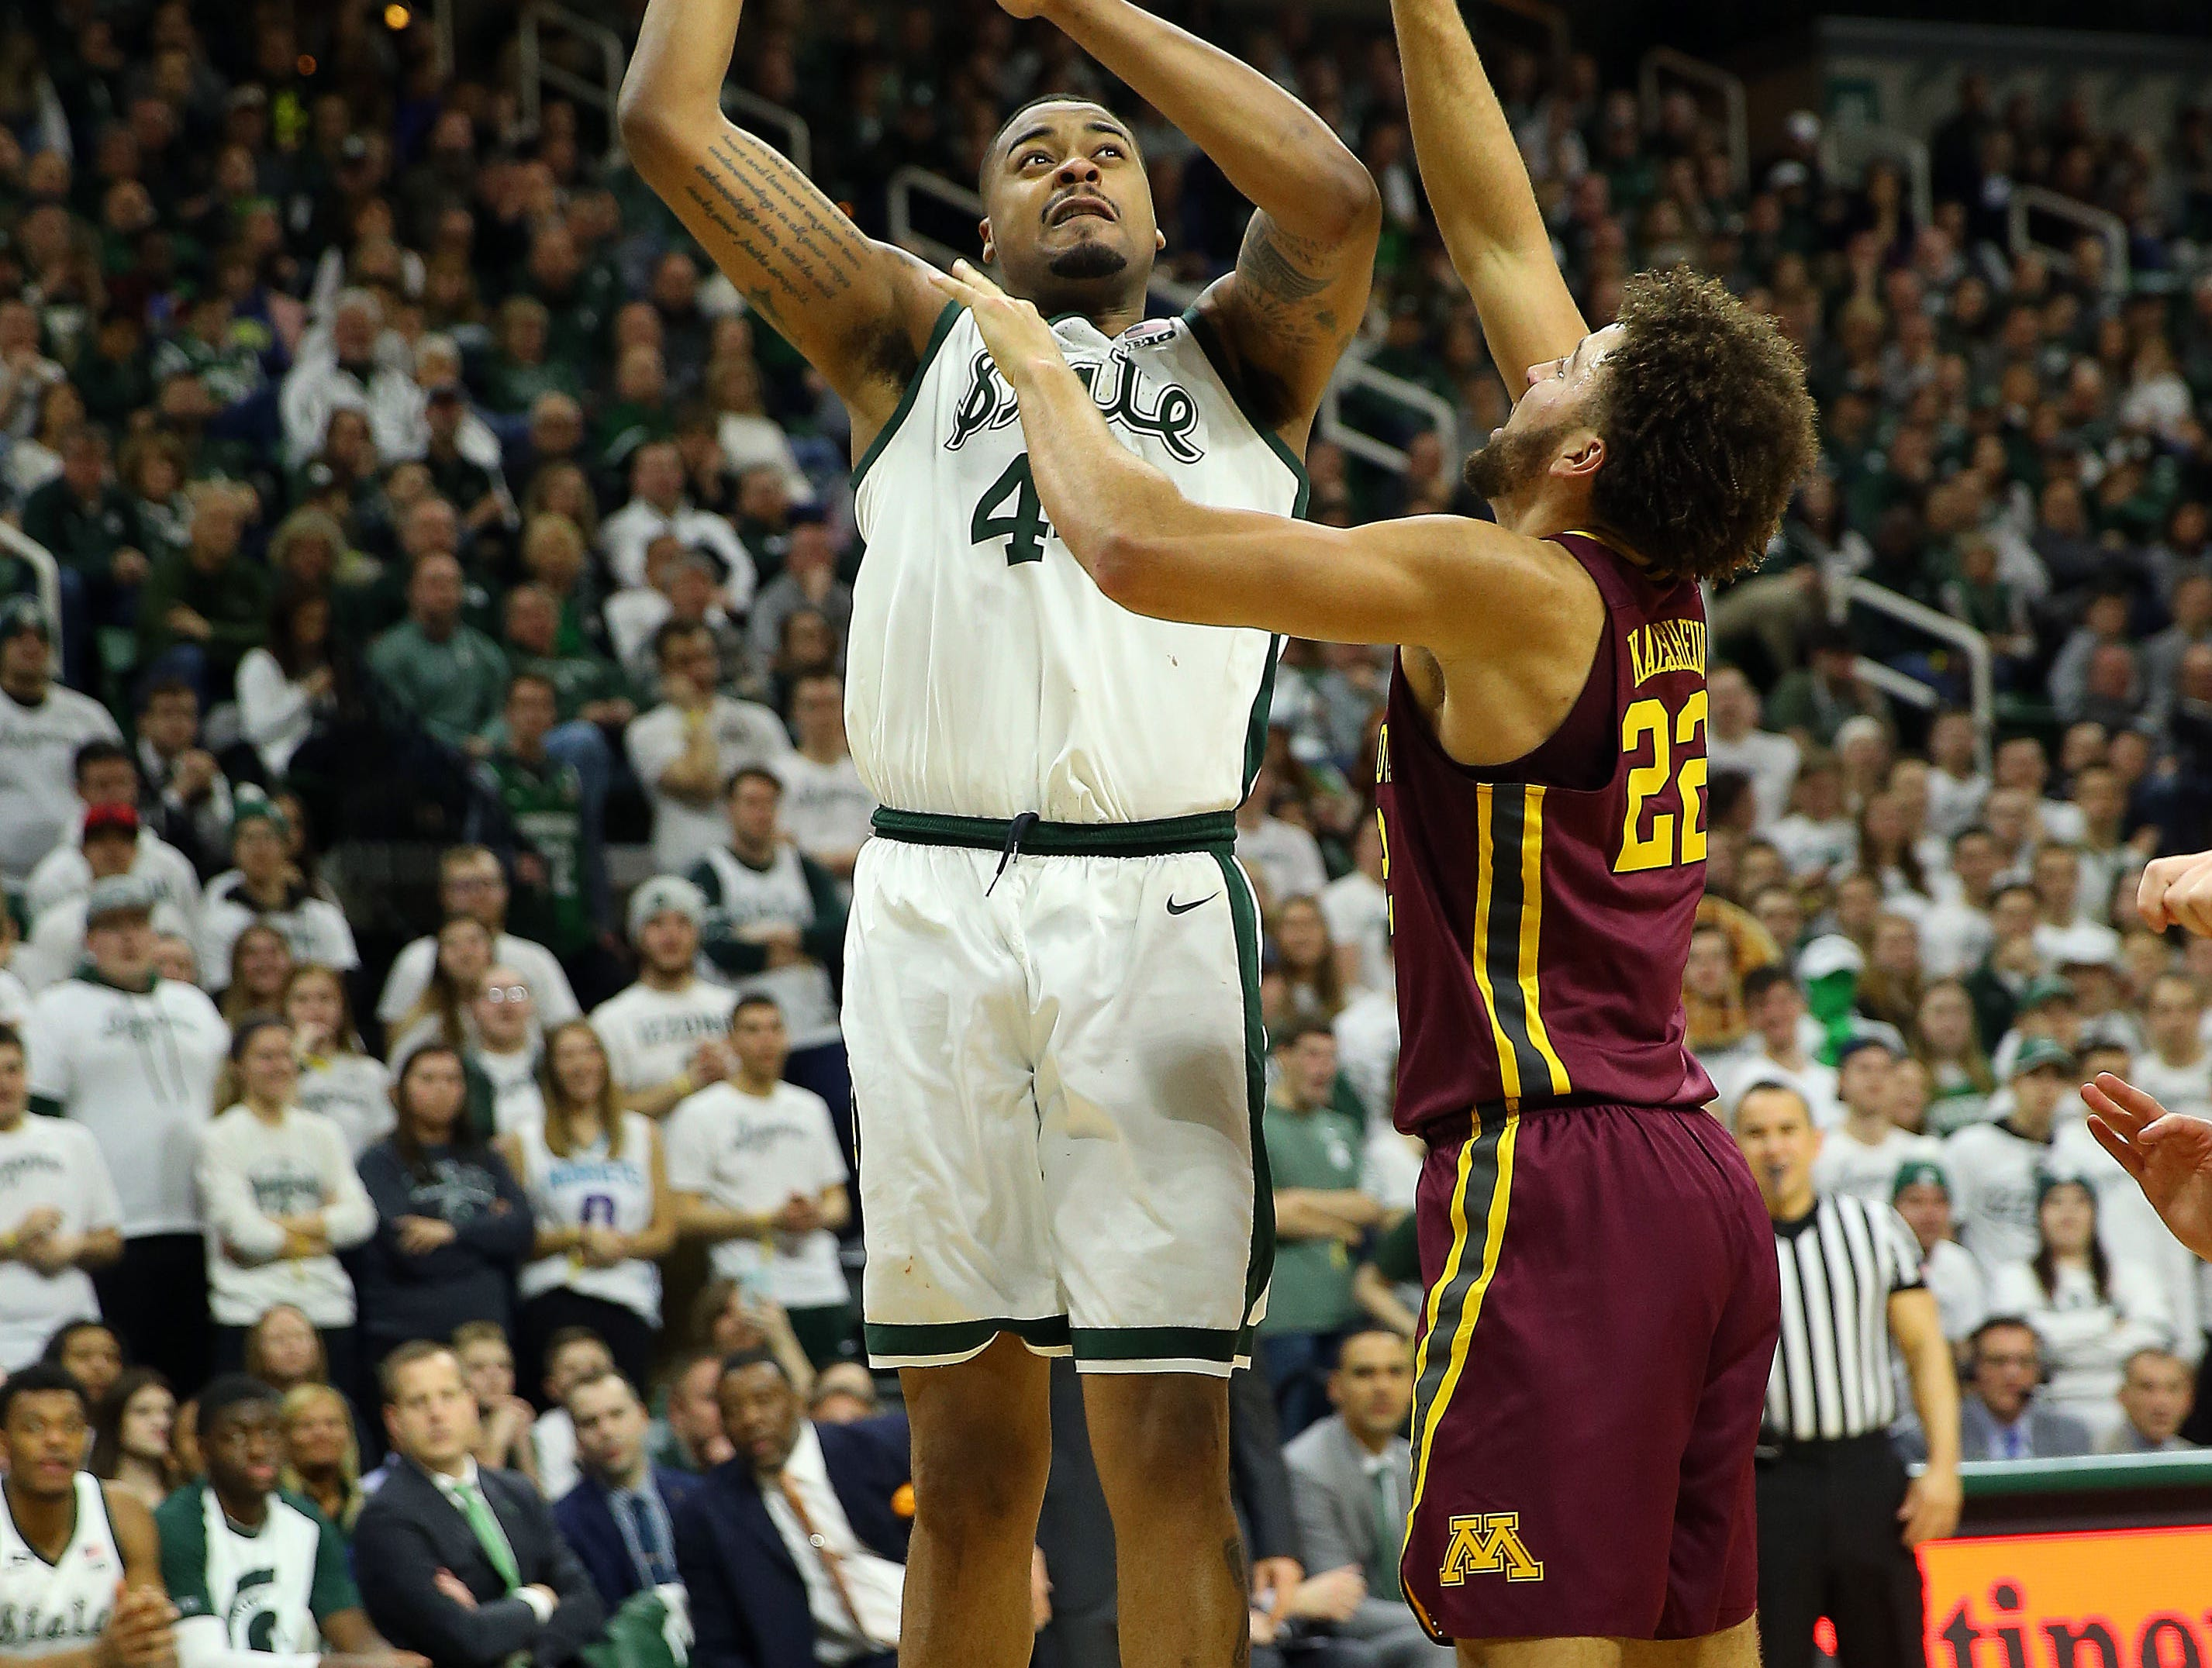 Feb 9, 2019; East Lansing, MI, USA; Michigan State Spartans forward Nick Ward (44) shoots over Minnesota Golden Gophers guard Gabe Kalscheur (22) during the second half at the Breslin Center. Mandatory Credit: Mike Carter-USA TODAY Sports